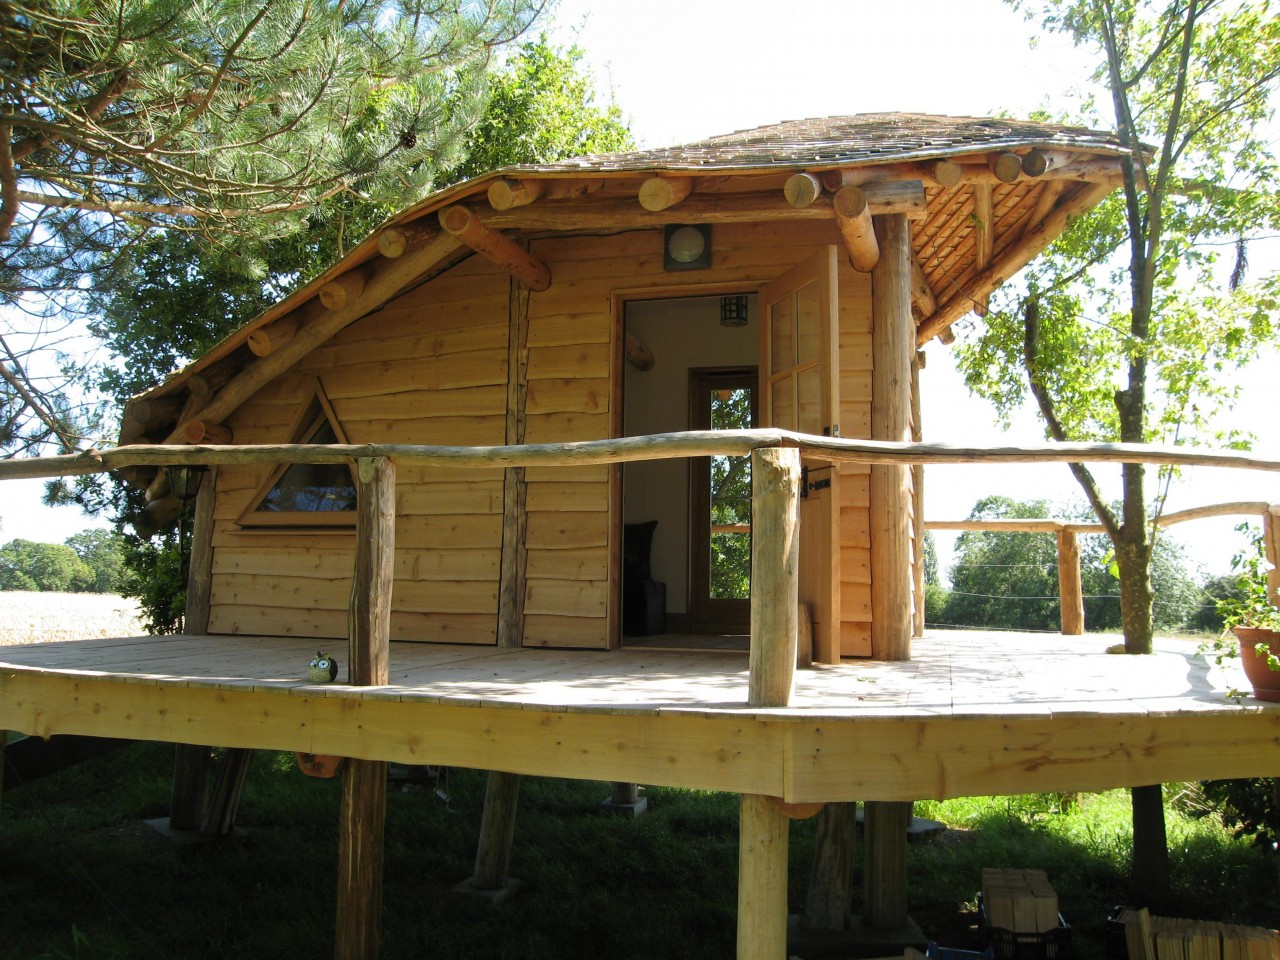 Studios, Tree houses, Retreats